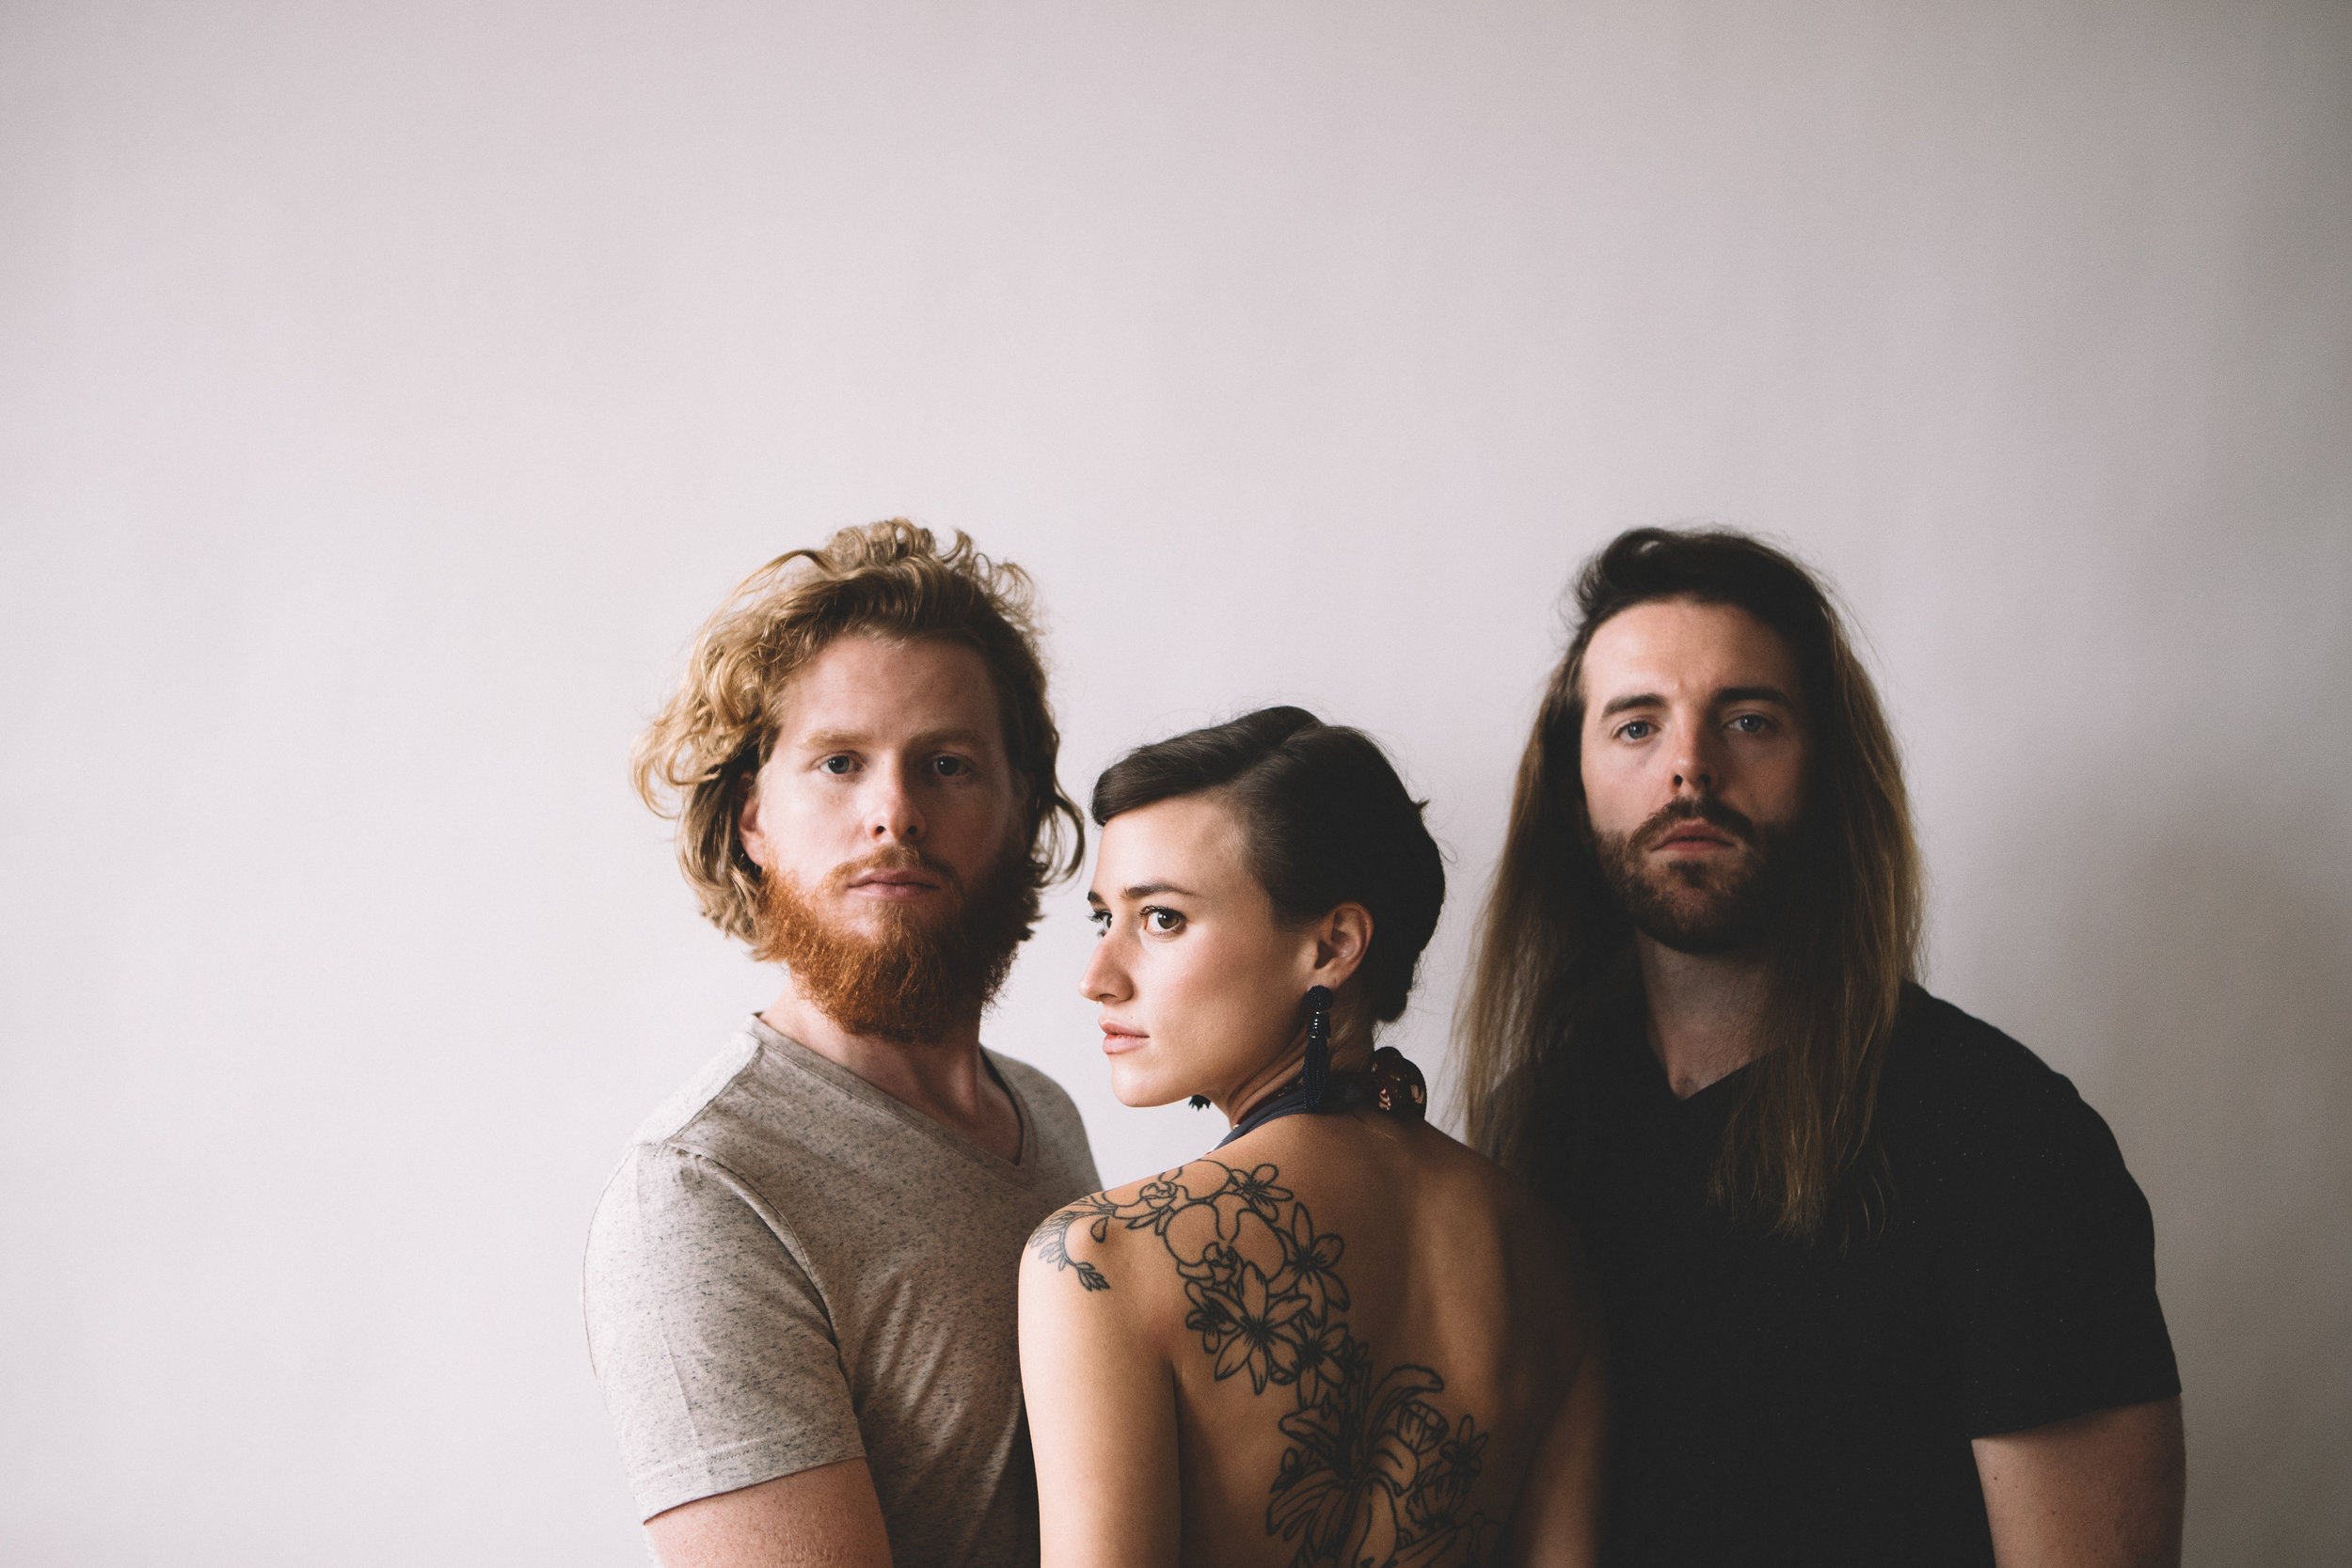 Ballroom Thieves - July 7th, 2019Doors open at 4:30 PM for food and drinkMusic starts at 7:00 PM